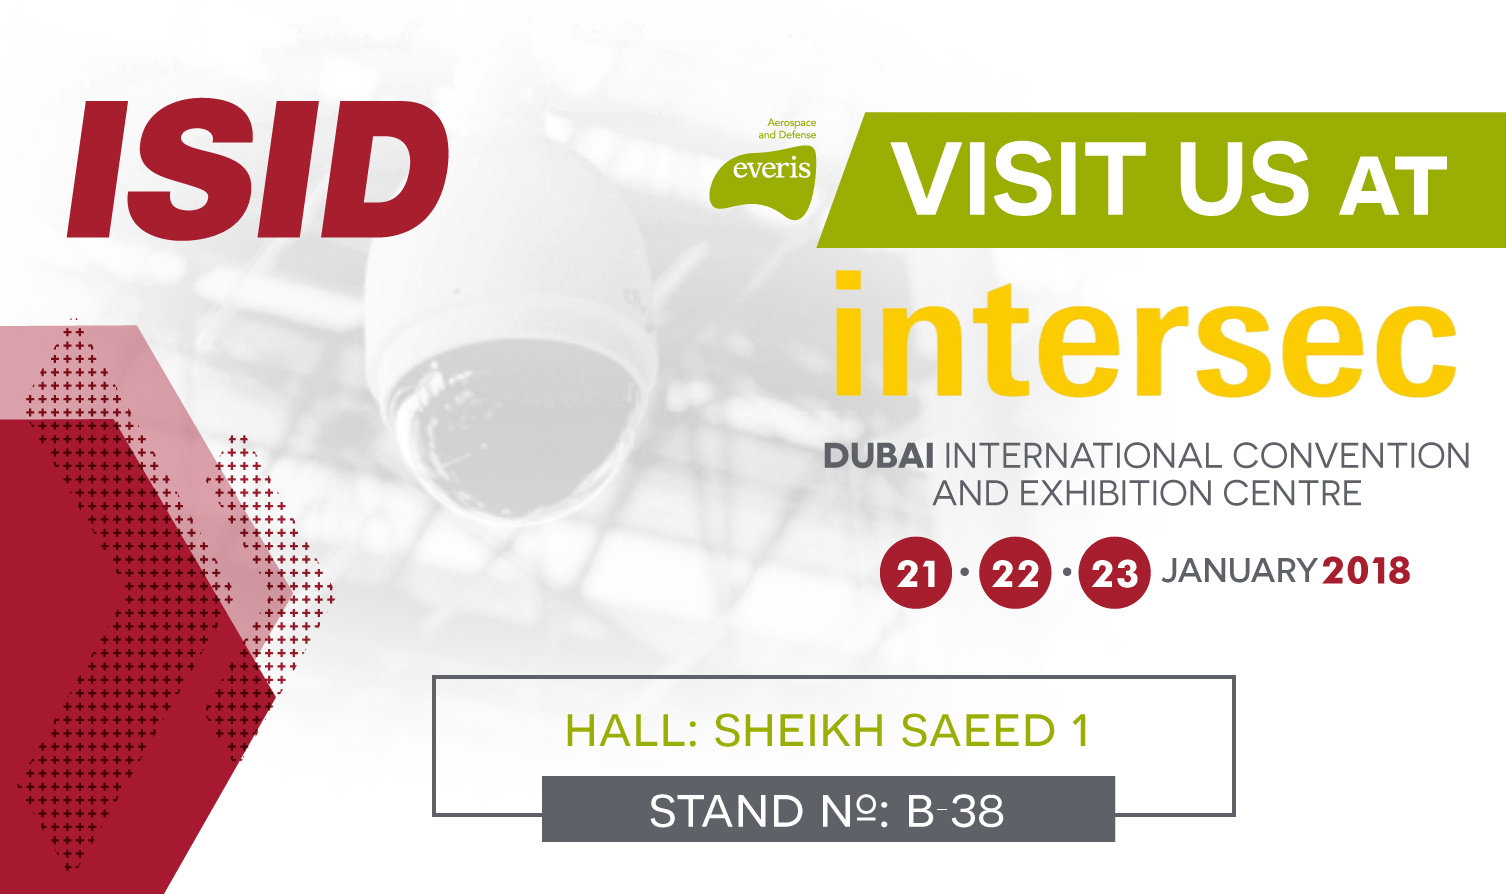 ISID will be present at Intersec Dubai 2018